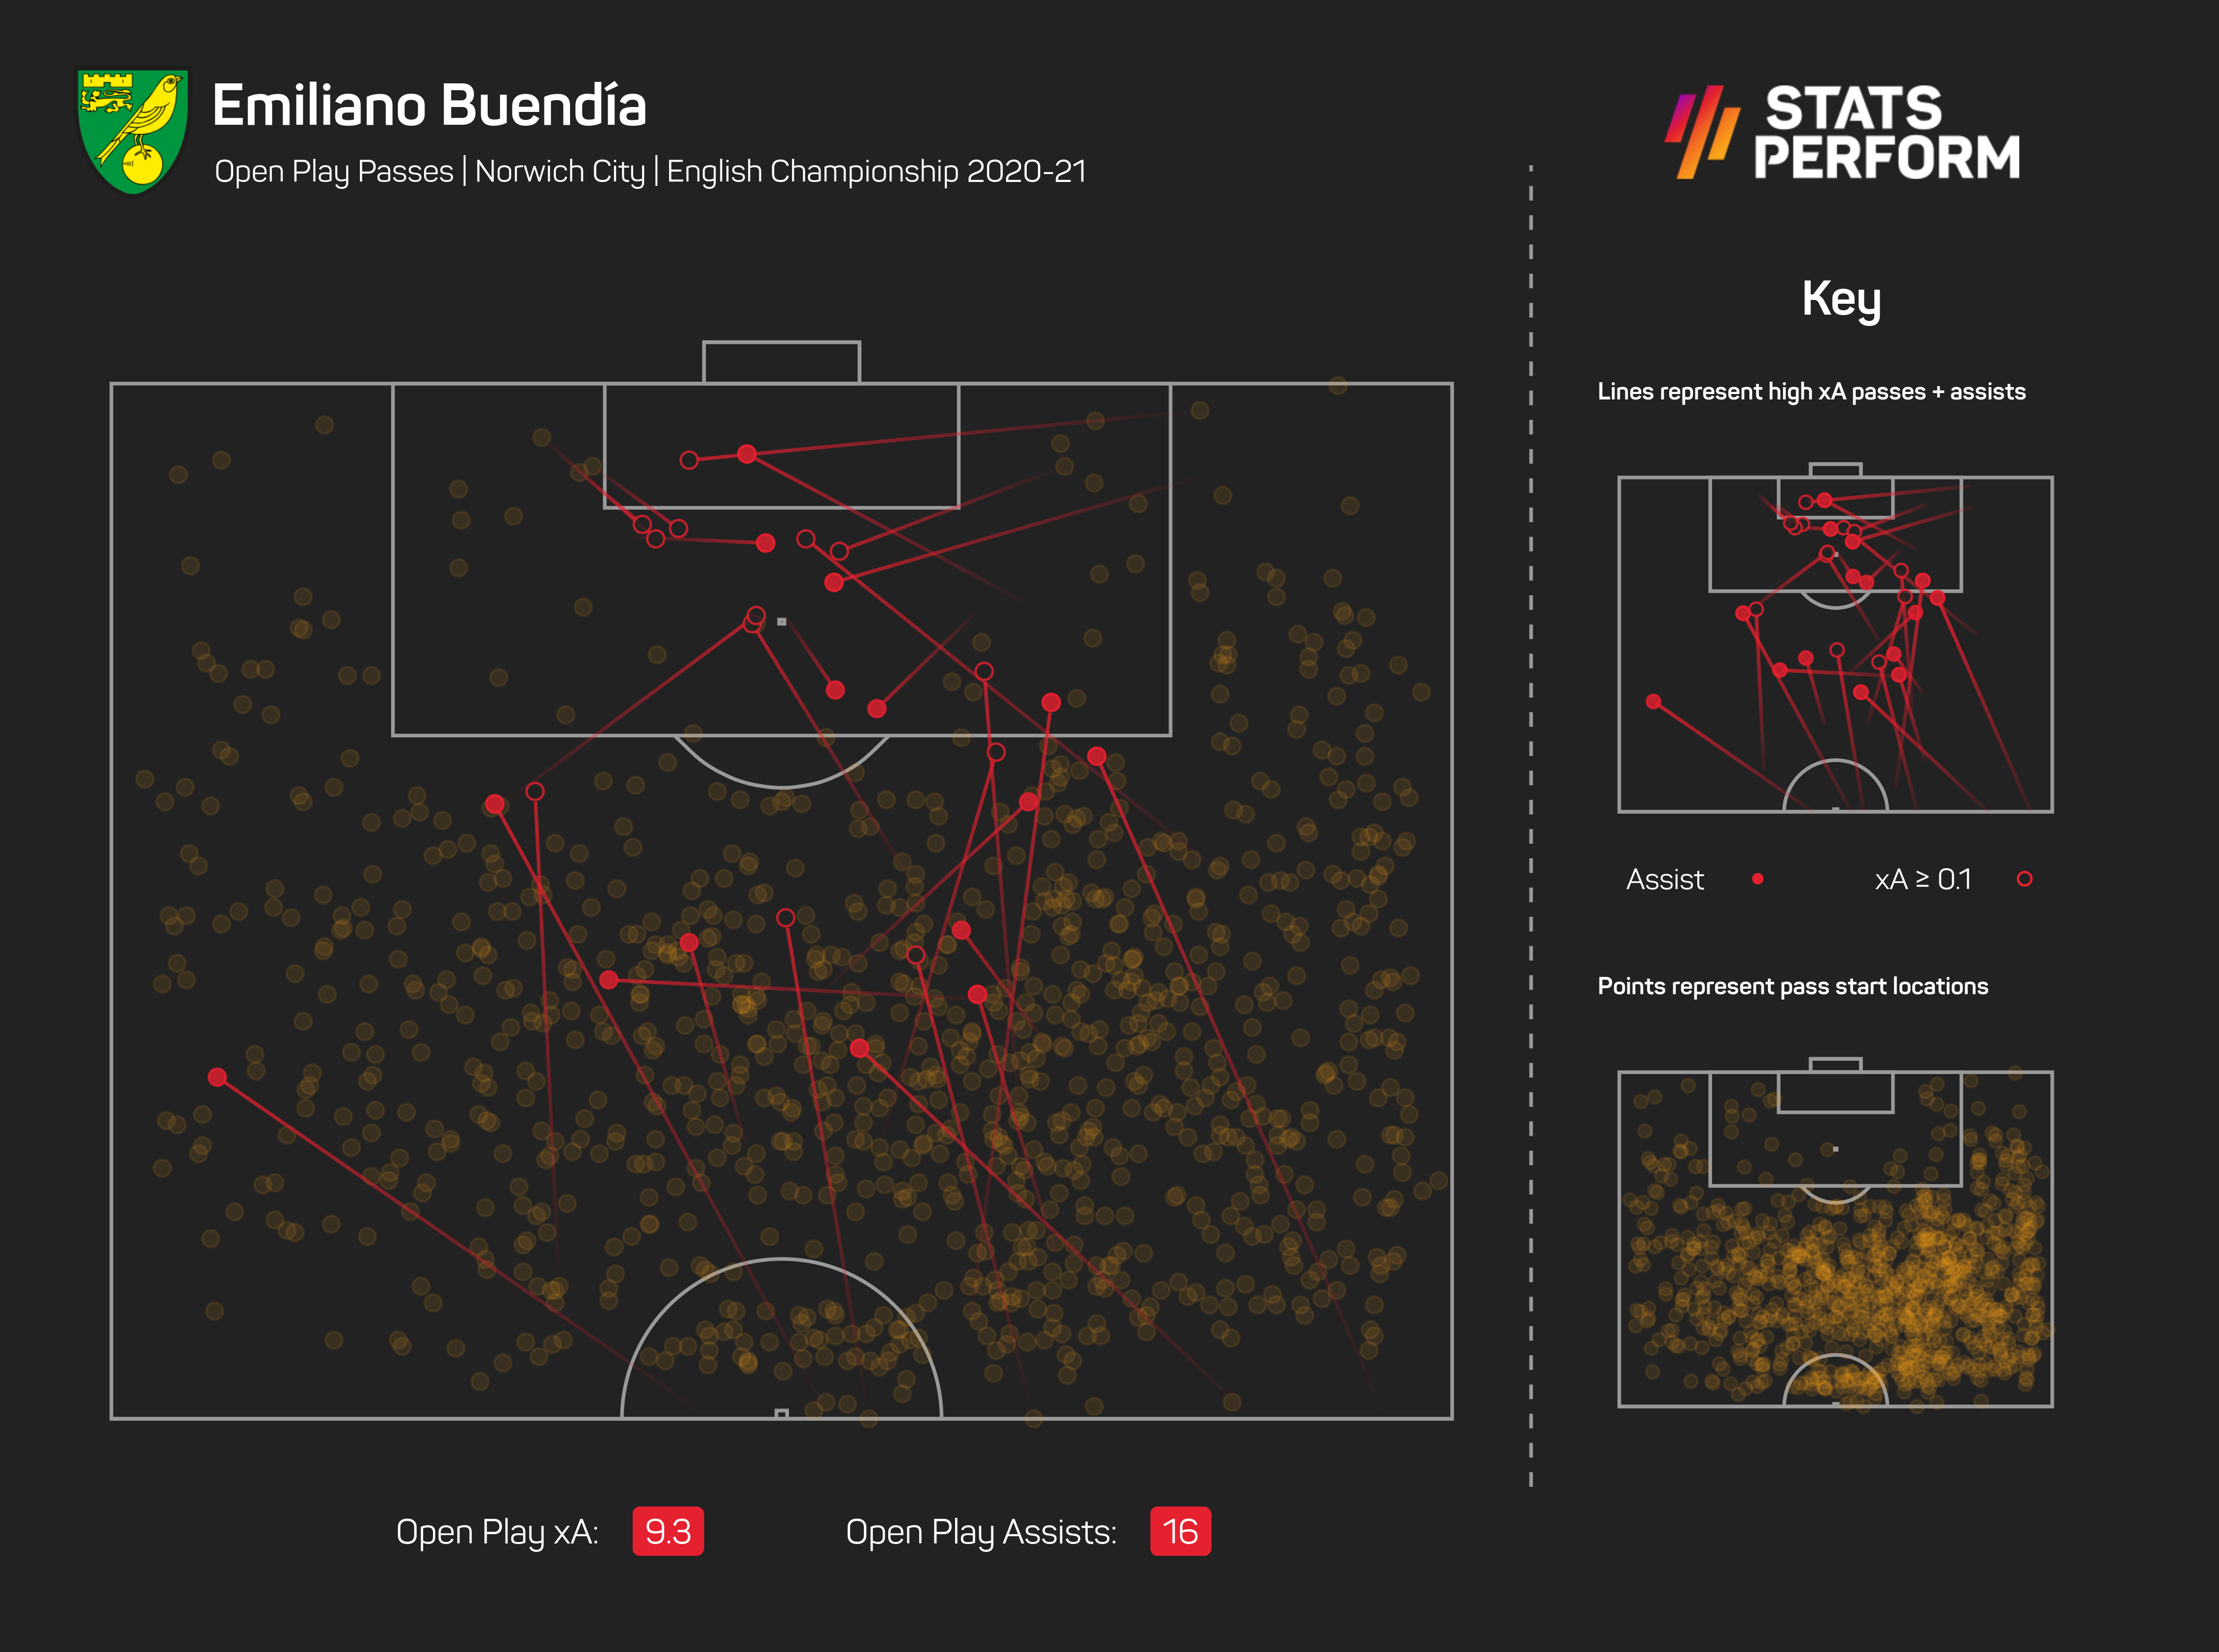 Buendia outperformed his xA, suggesting he benefited from fortune and/or remarkable finishing, but his xA was still high